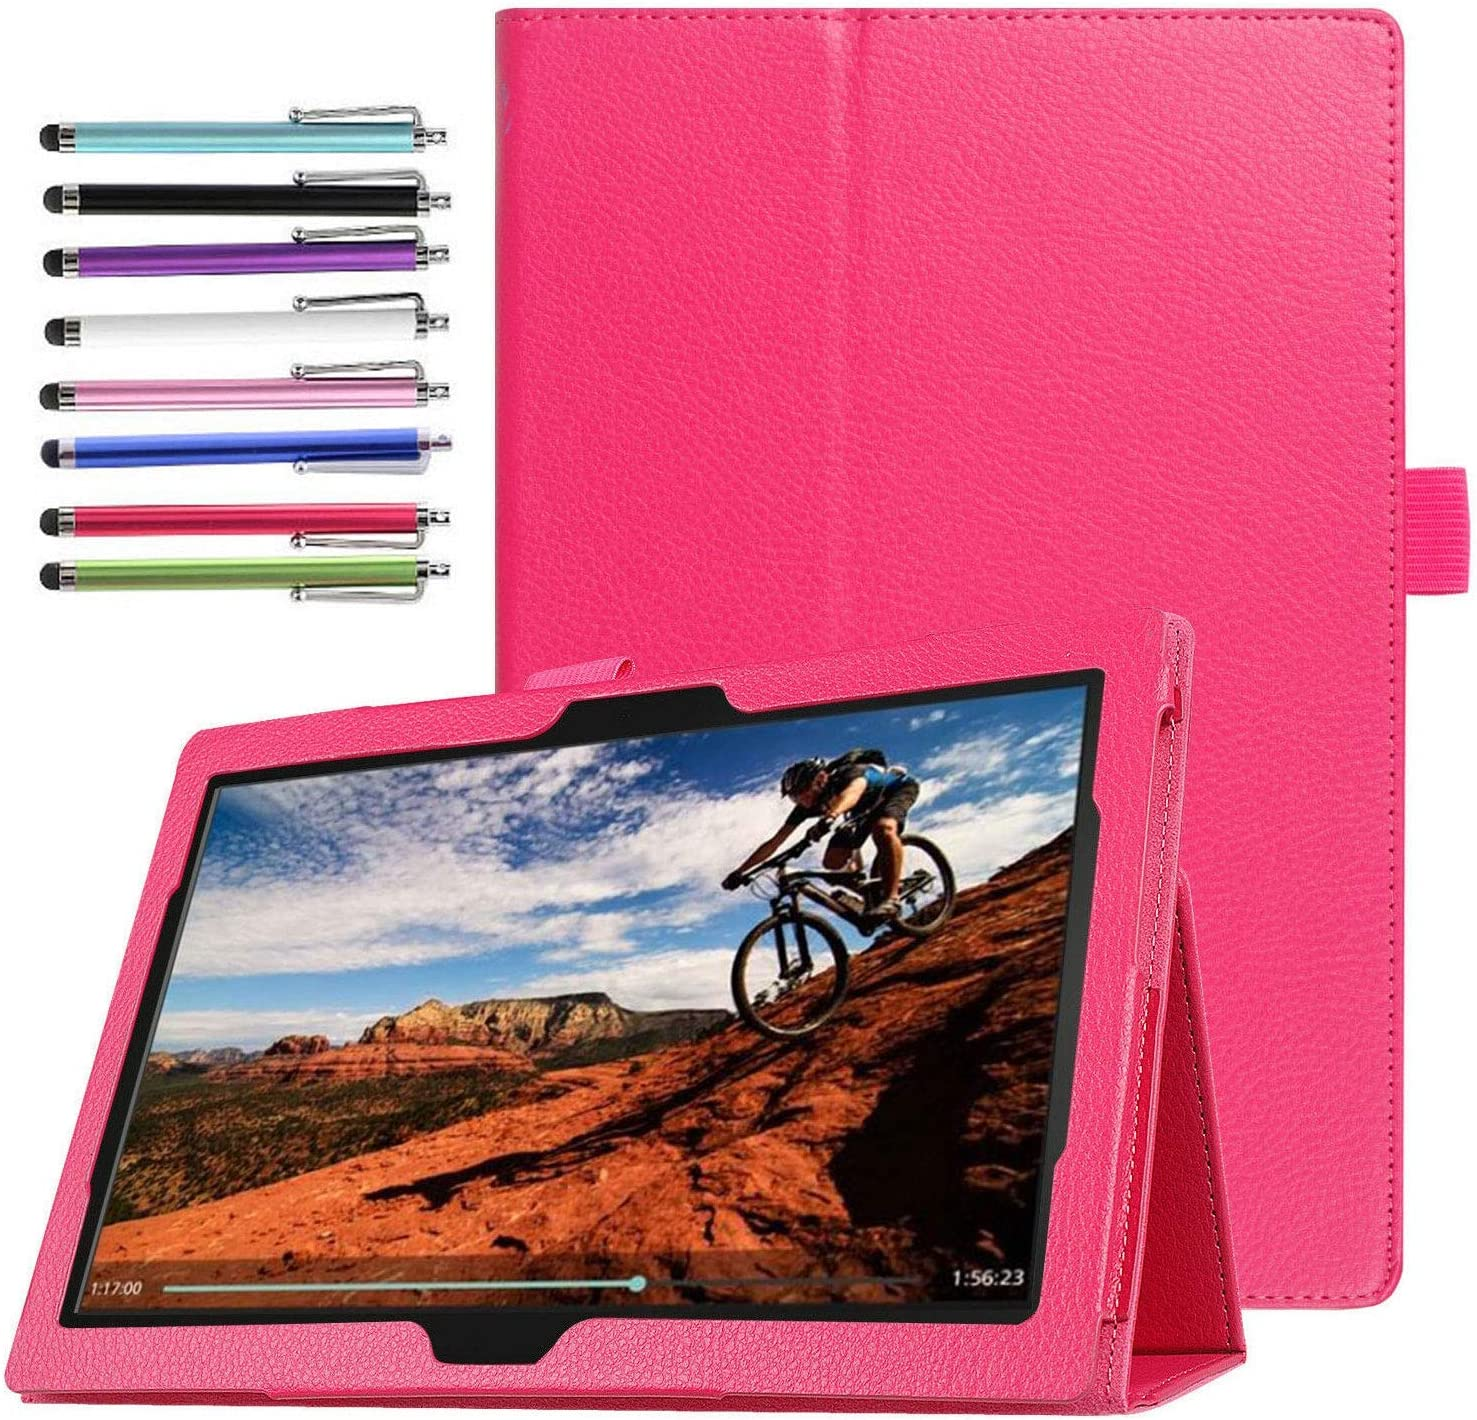 Epicgadget Case for Lenovo Smart Tab M10 TB-X505F/TB-X605F Slim Lightweight Folio PU Leather Folding Stand Cover Case for Lenovo Table M10 10.1 Inch Display 2019/2018 Released (Pink)